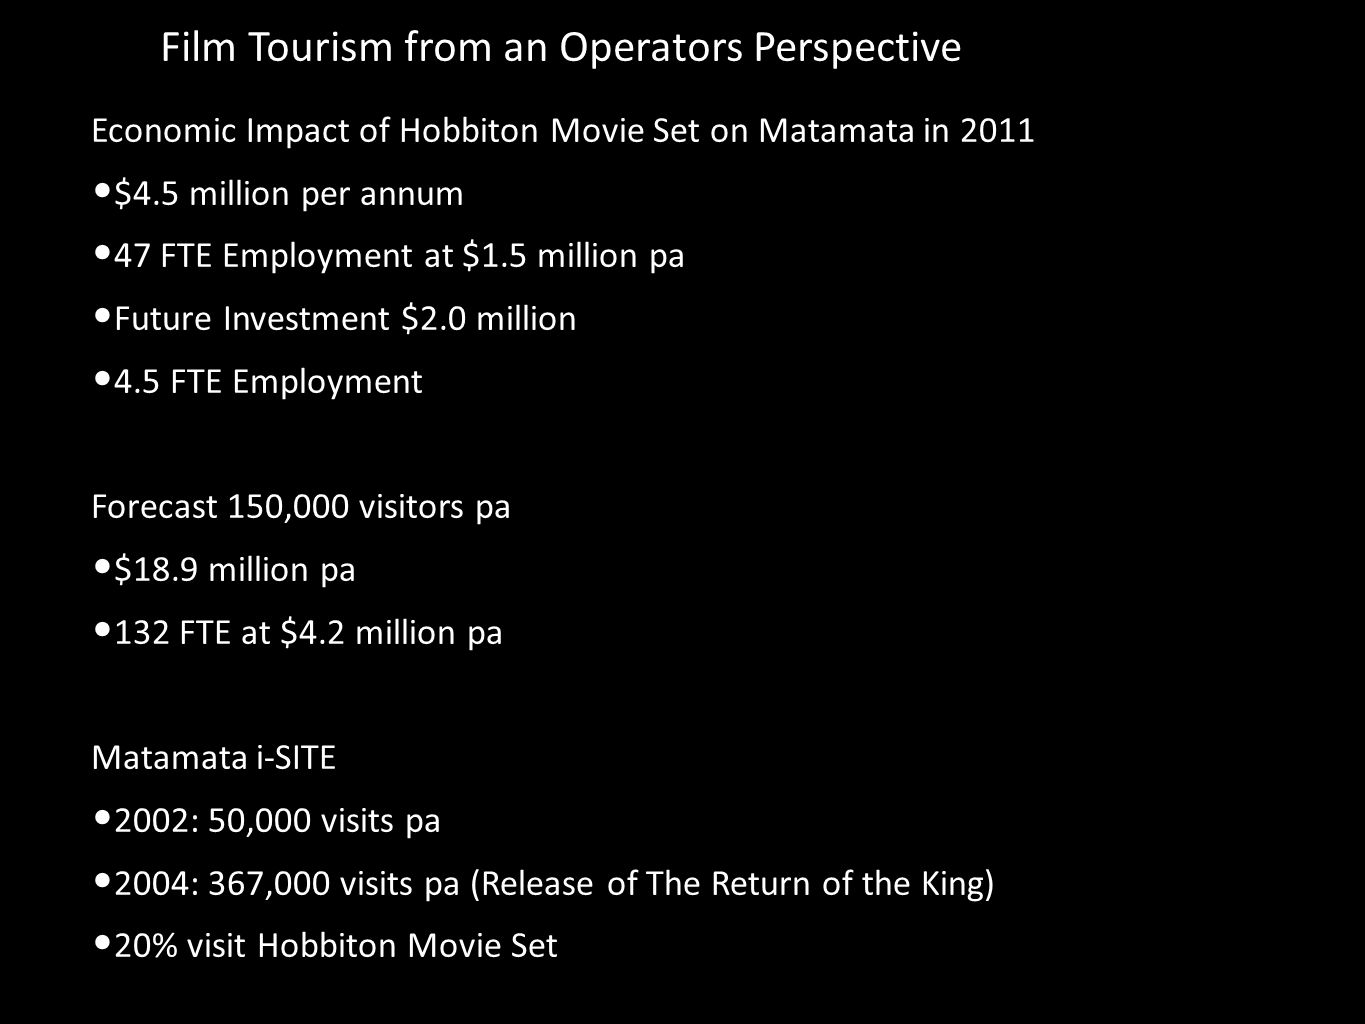 Film Tourism from an Operators Perspective Economic Impact of Hobbiton Movie Set on Matamata in 2011 $4.5 million per annum 47 FTE Employment at $1.5 million pa Future Investment $2.0 million 4.5 FTE Employment Forecast 150,000 visitors pa $18.9 million pa 132 FTE at $4.2 million pa Matamata i-SITE 2002: 50,000 visits pa 2004: 367,000 visits pa (Release of The Return of the King) 20% visit Hobbiton Movie Set